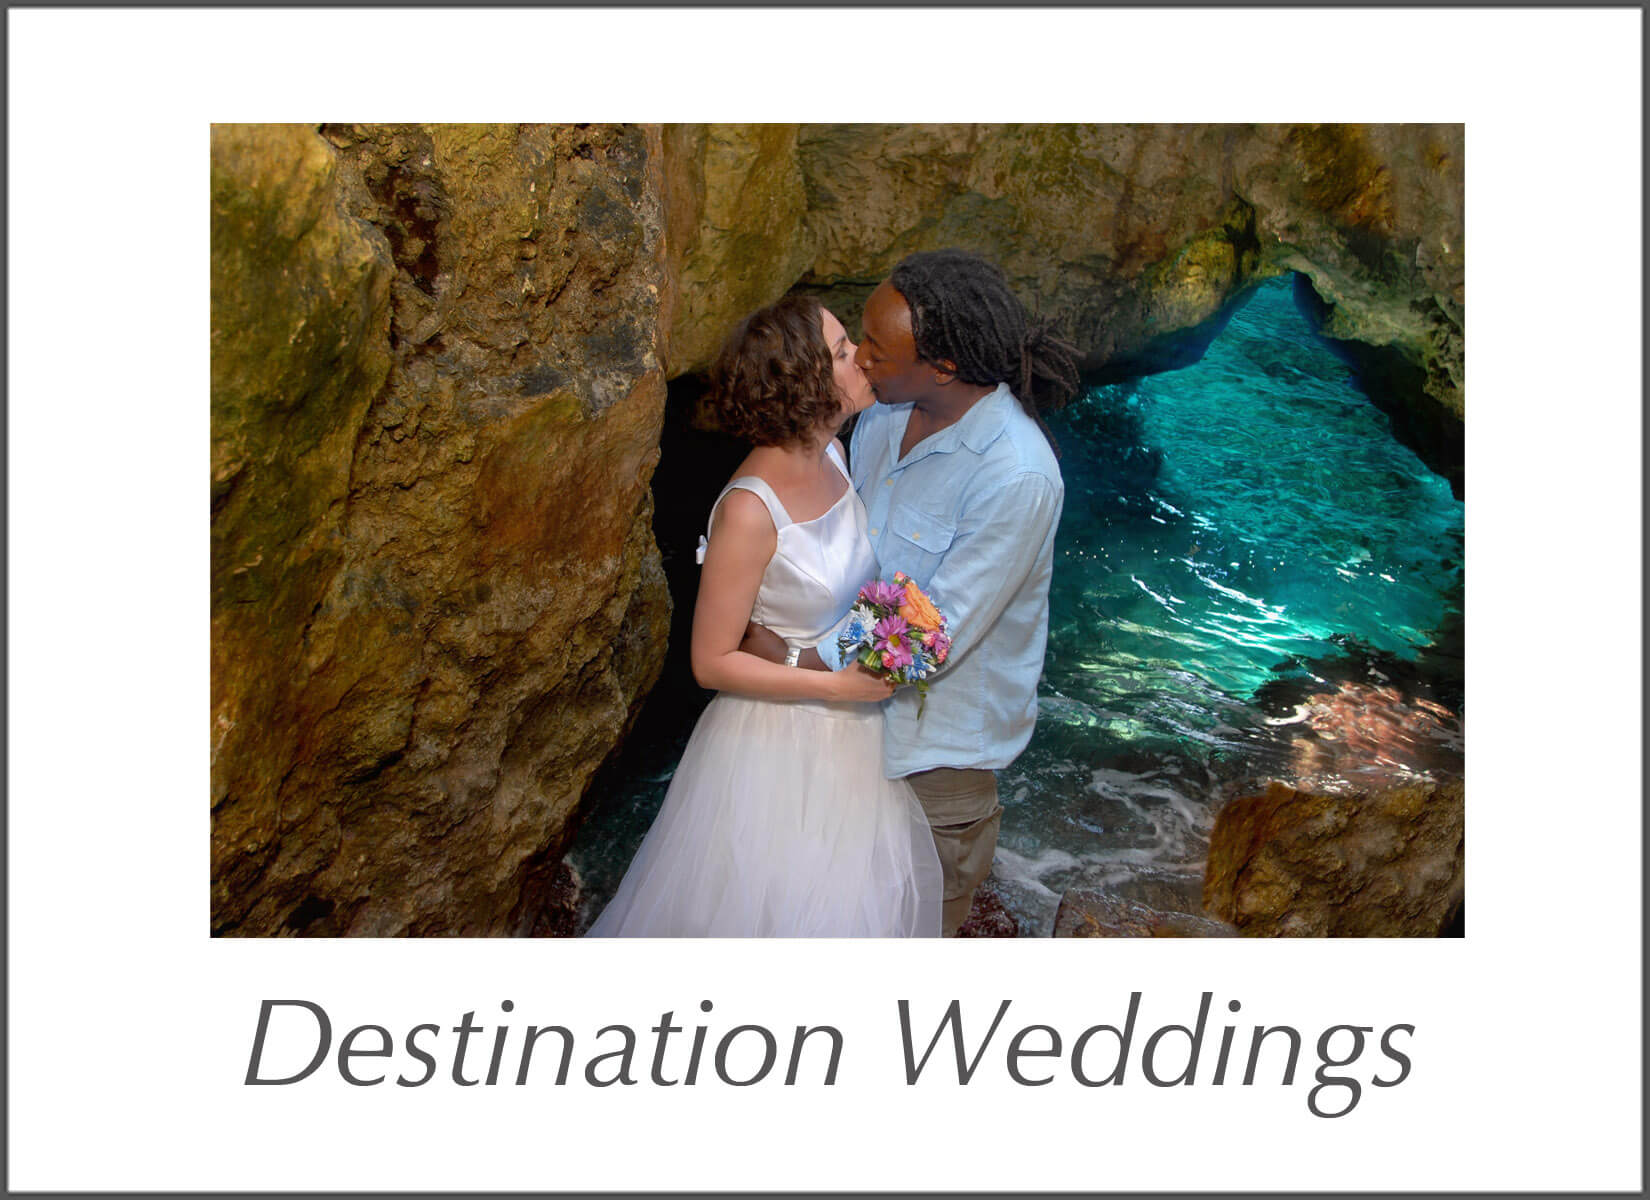 Well traveled photographer Marci Curtis is available to photograph destination weddings.